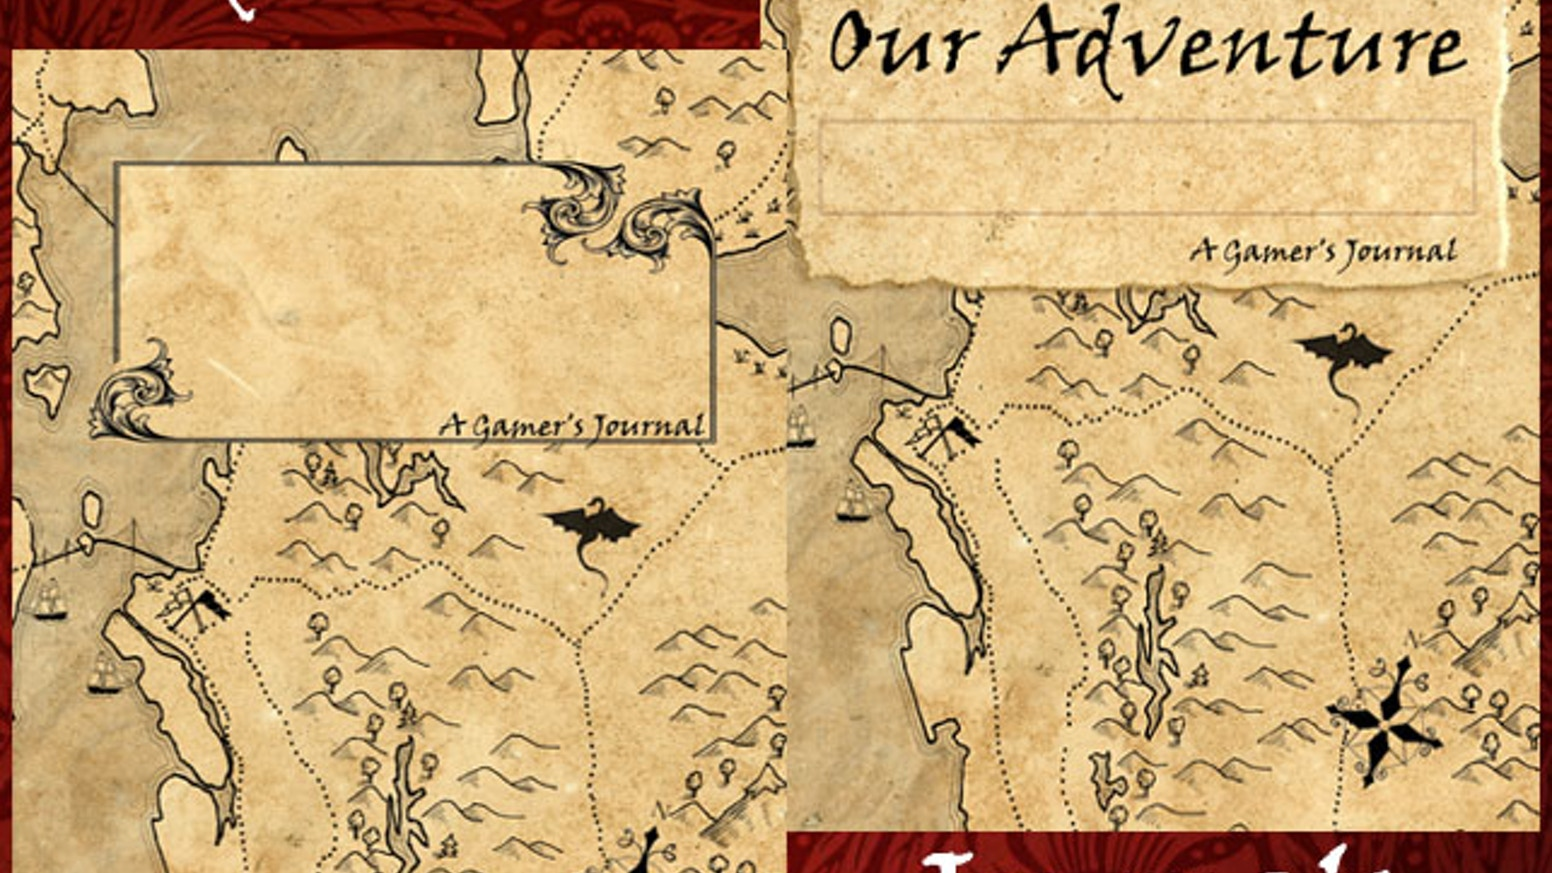 Every epic adventure deserves to be chronicled. Here is a 100 page or a 50 page journal designed specifically for gamers like you.